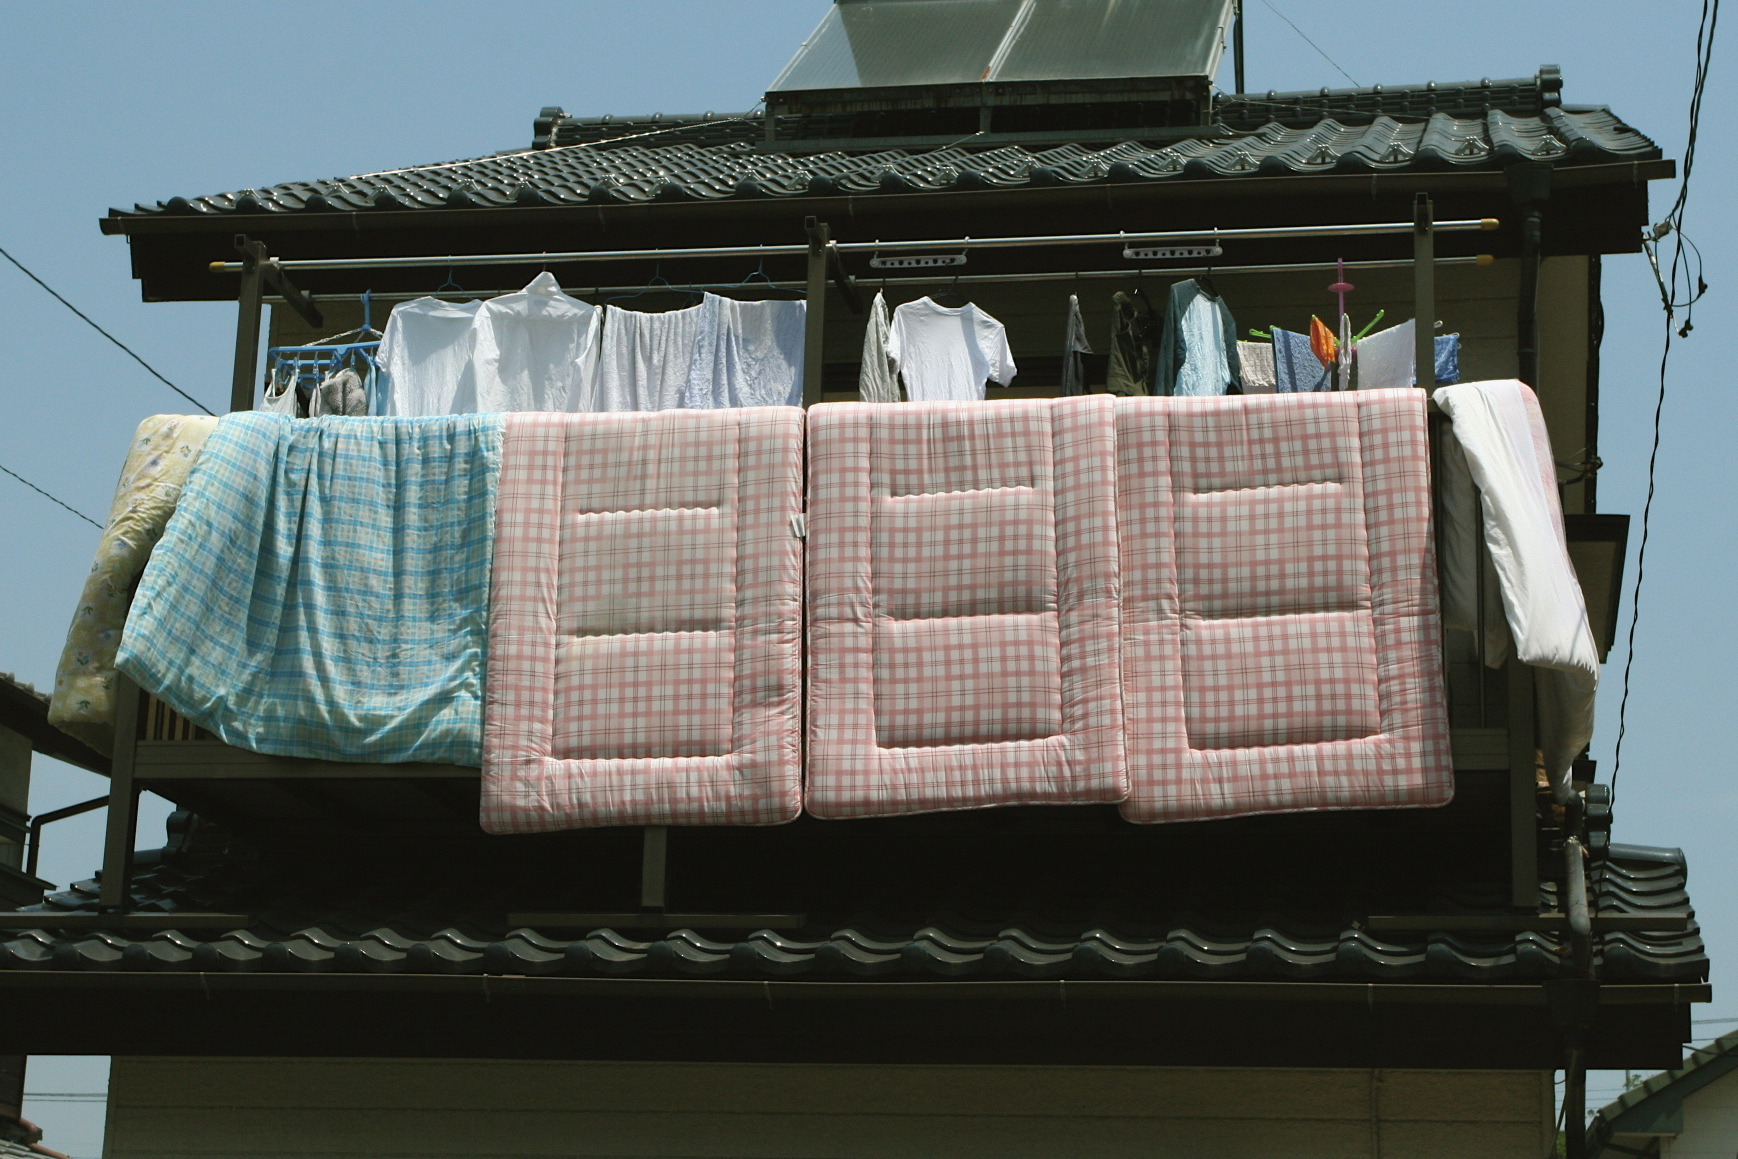 Picturing of clothes and futons being hung out to dry off of a balcony